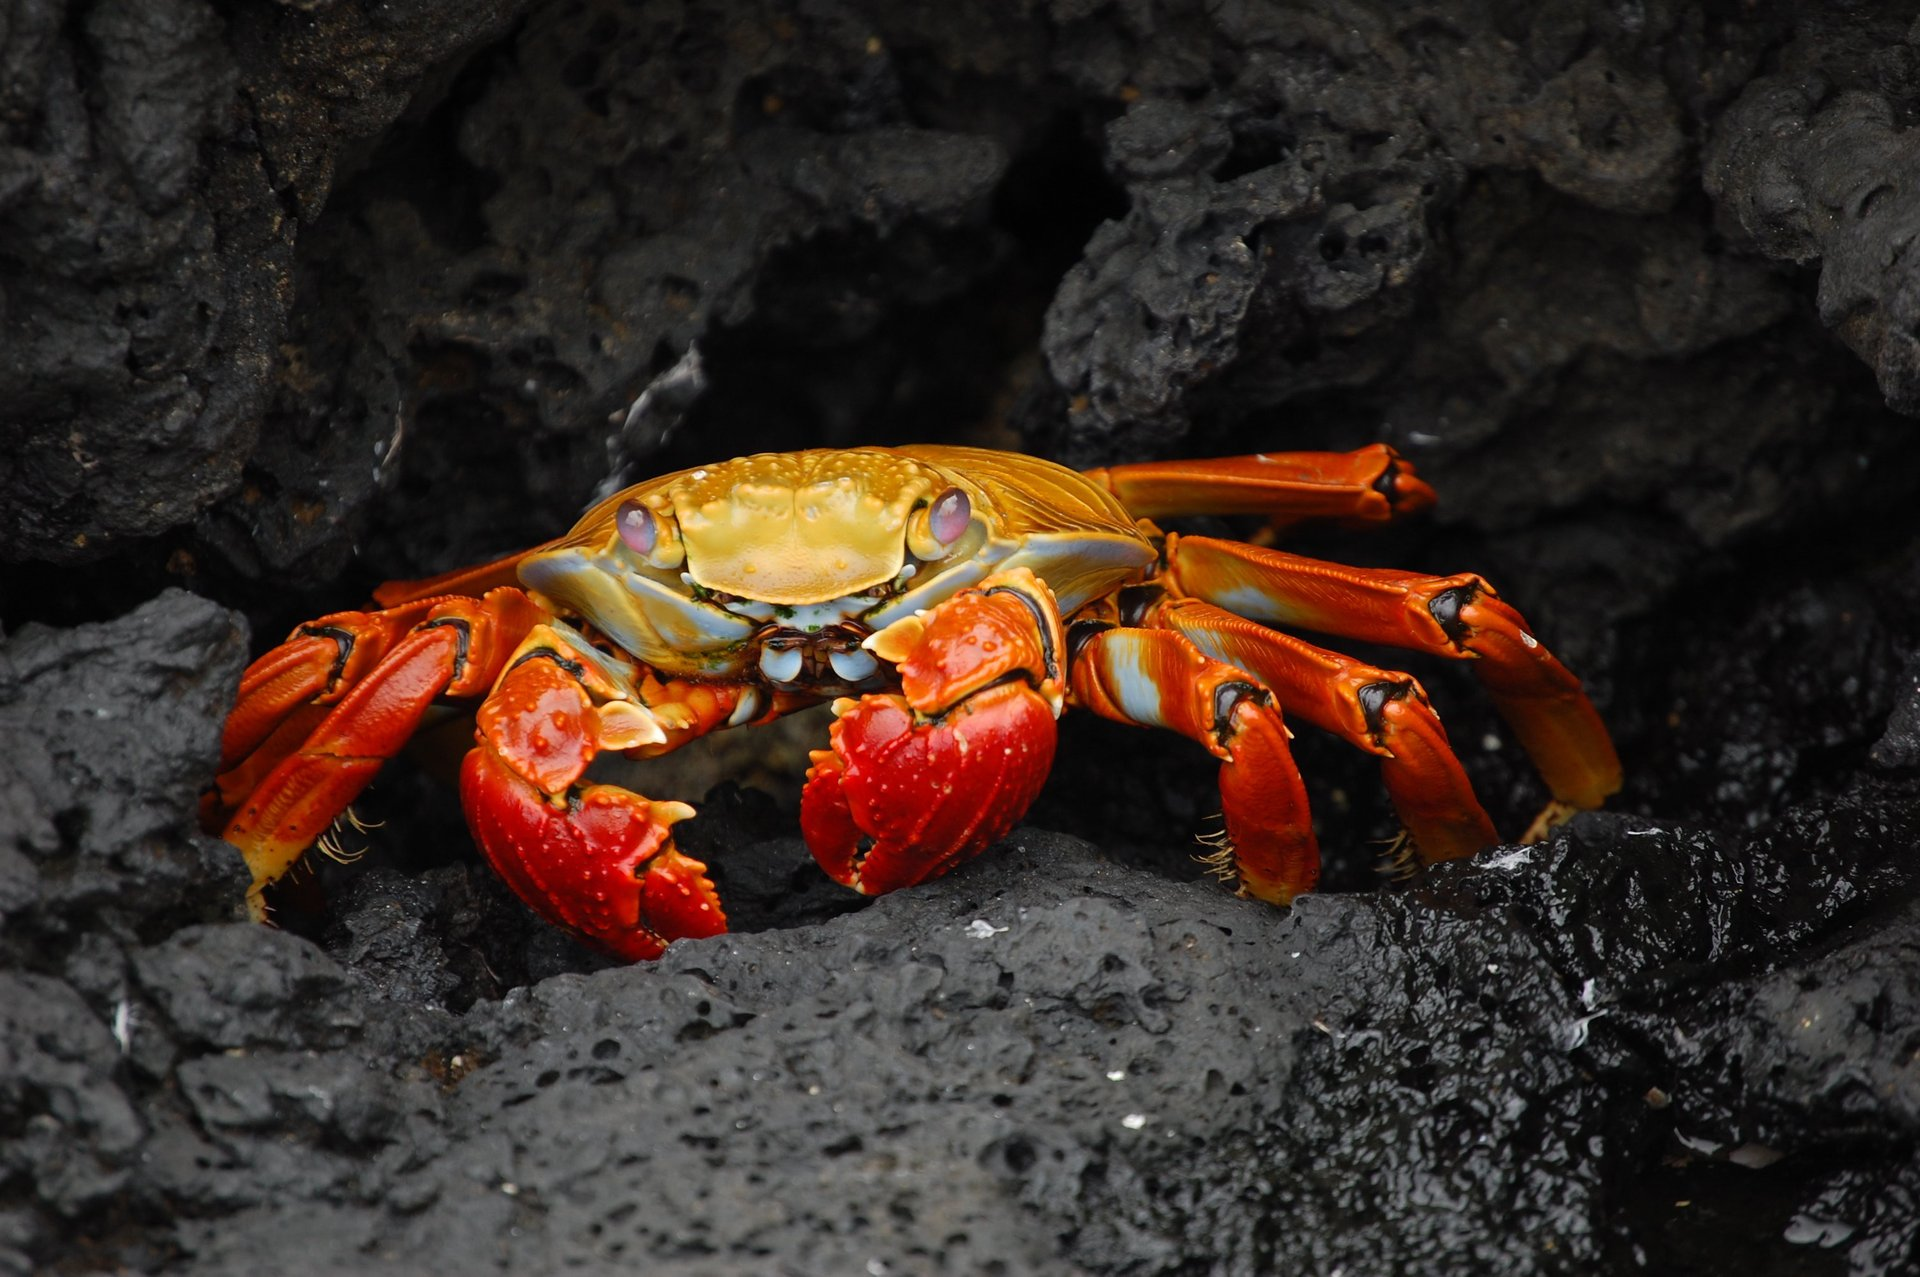 Red Rock Crab in Galapagos Islands 2020 - Best Time